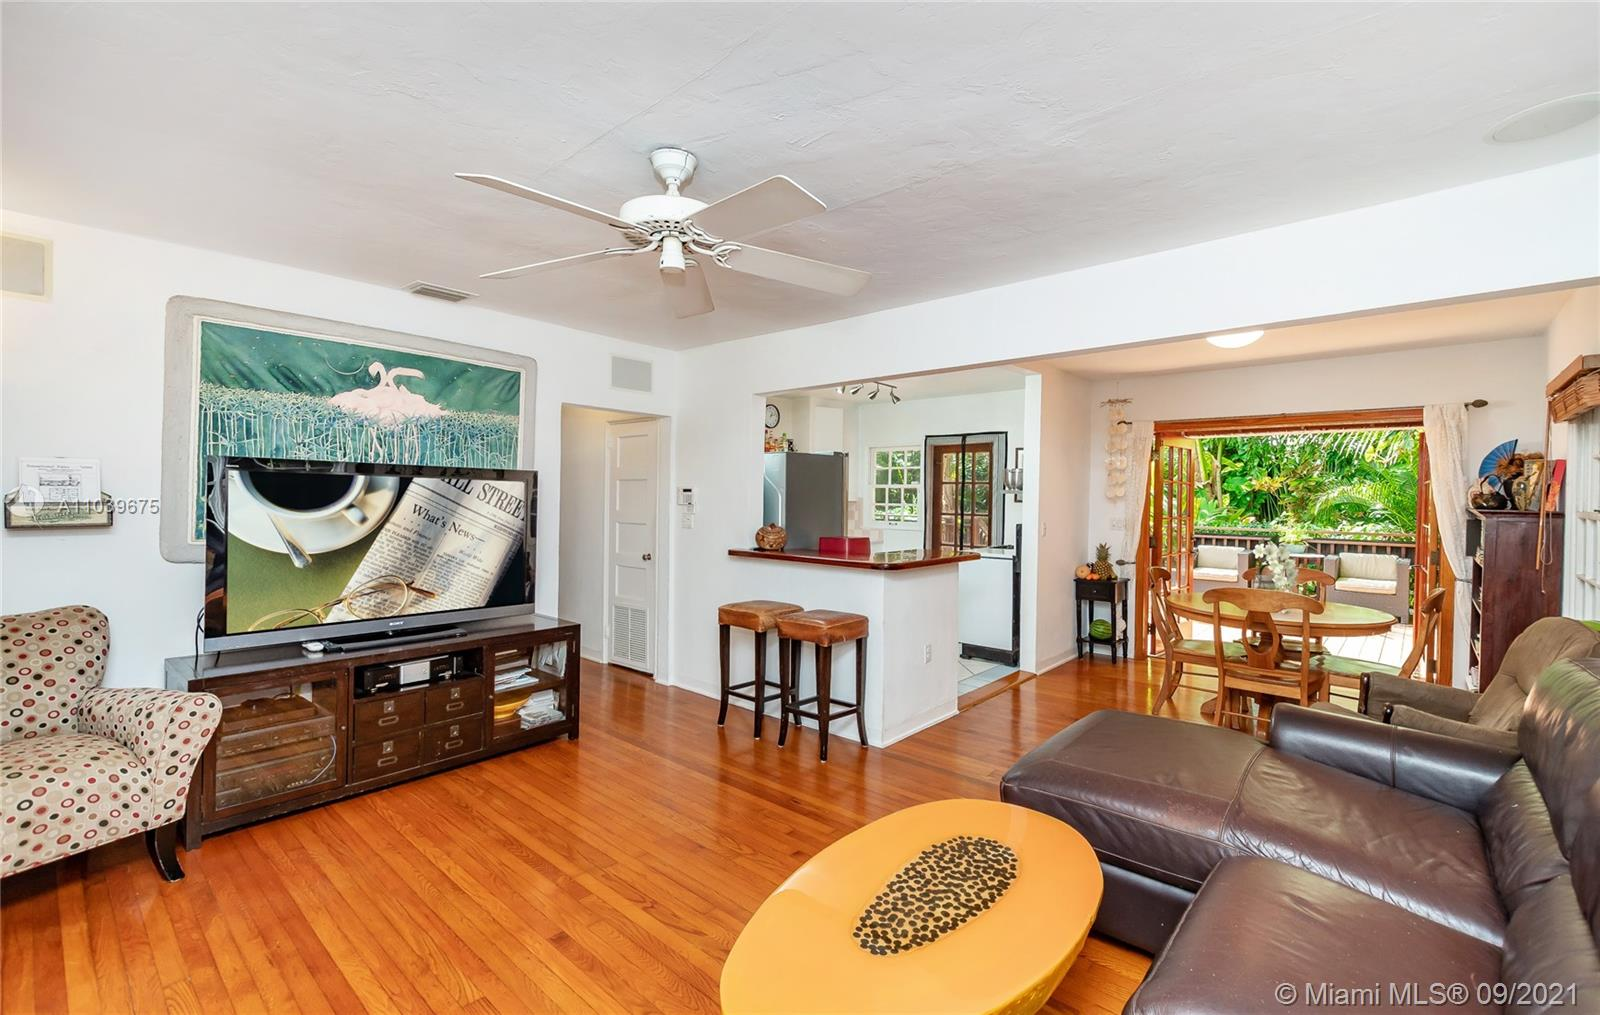 Stop sitting in traffic, enjoy the pedestrian lifestyle in Central Coconut Grove. 87-Walkabilty score. 1-block from Blanche Dog/Kid Park. Terrific investment opportunity T-3 duplex zoned lot. 1280 sq ft. of living area with 1015 sq.ft. of Ipe decking in stunning green gardens. Located 7-min from downtown Miami on a quiet 1-block Street. Tremendous craftsmanship throughout. Original hardwood floors. Turkish stone master bath/steam room. Mosaic keystone patios. Private outdoor shower. Easy to maintain tropical paradise in complete seclusion with bamboo, palms and fruit trees. Metal roof. Automatic gated entry and covered garage. Plenty of parking for guests. Separate storage workshop. Walk to everything-restaurants, grocery, waterfront, cafés, top-rated schools, kayak/boat rentals, Metrorail